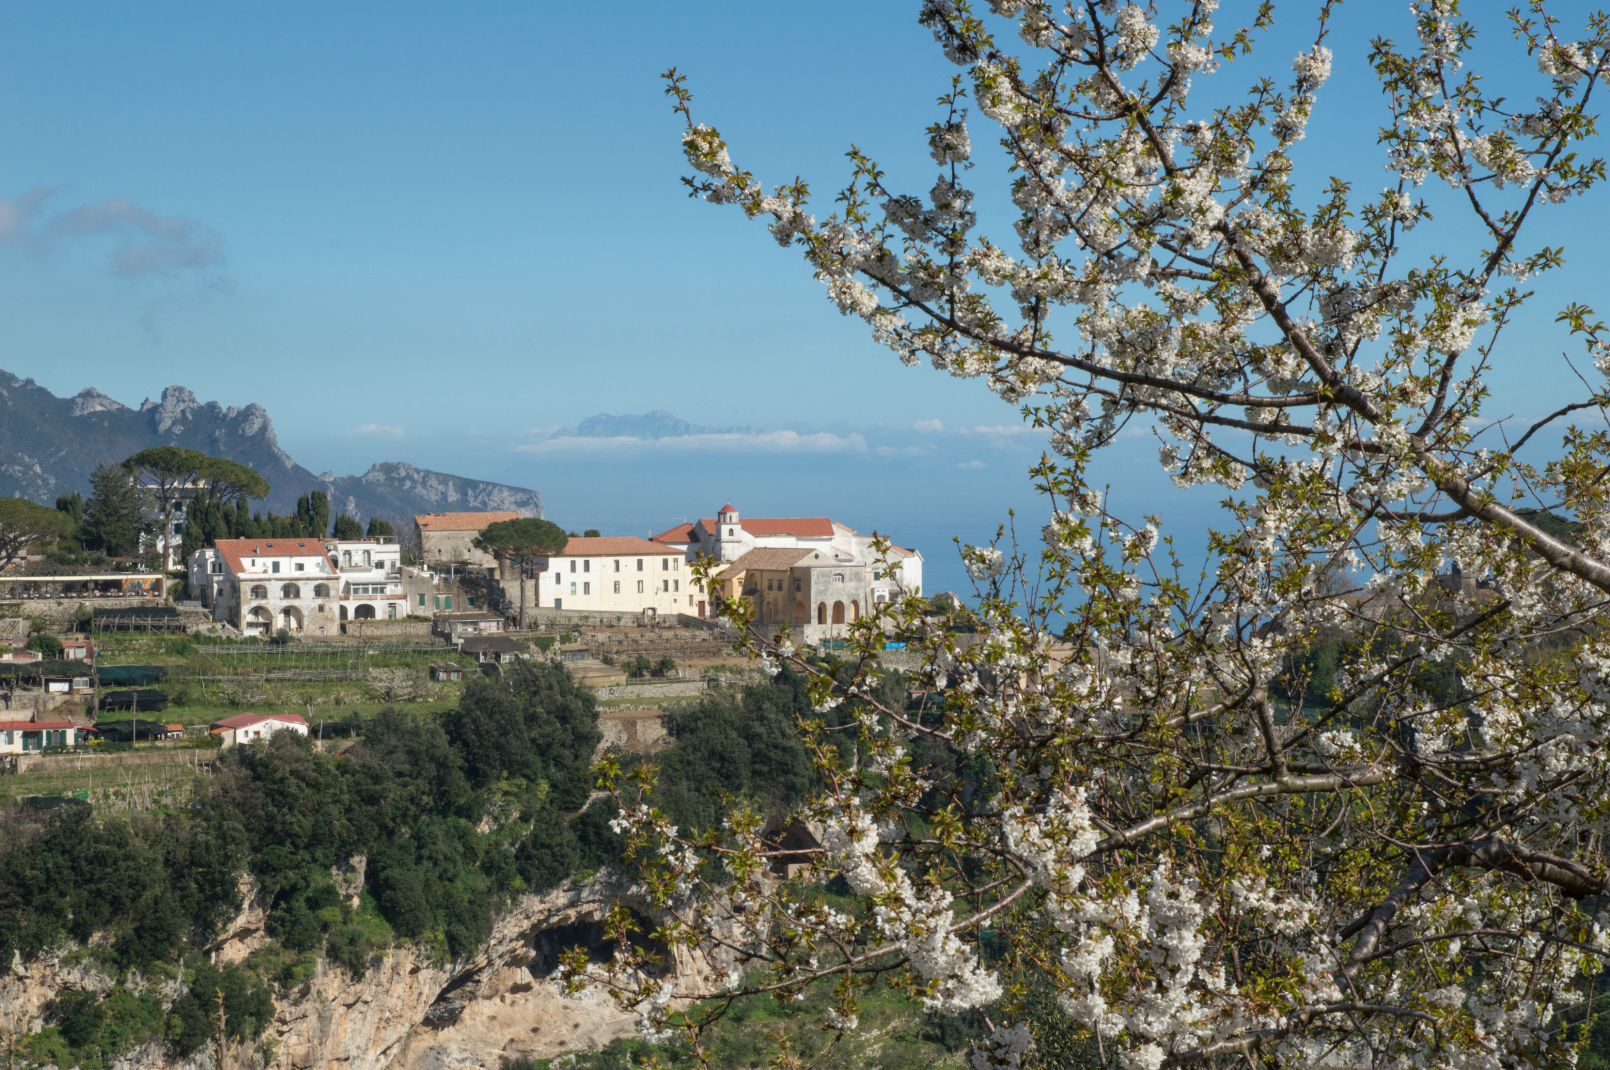 Visiting the Amalfi Coast in the Spring